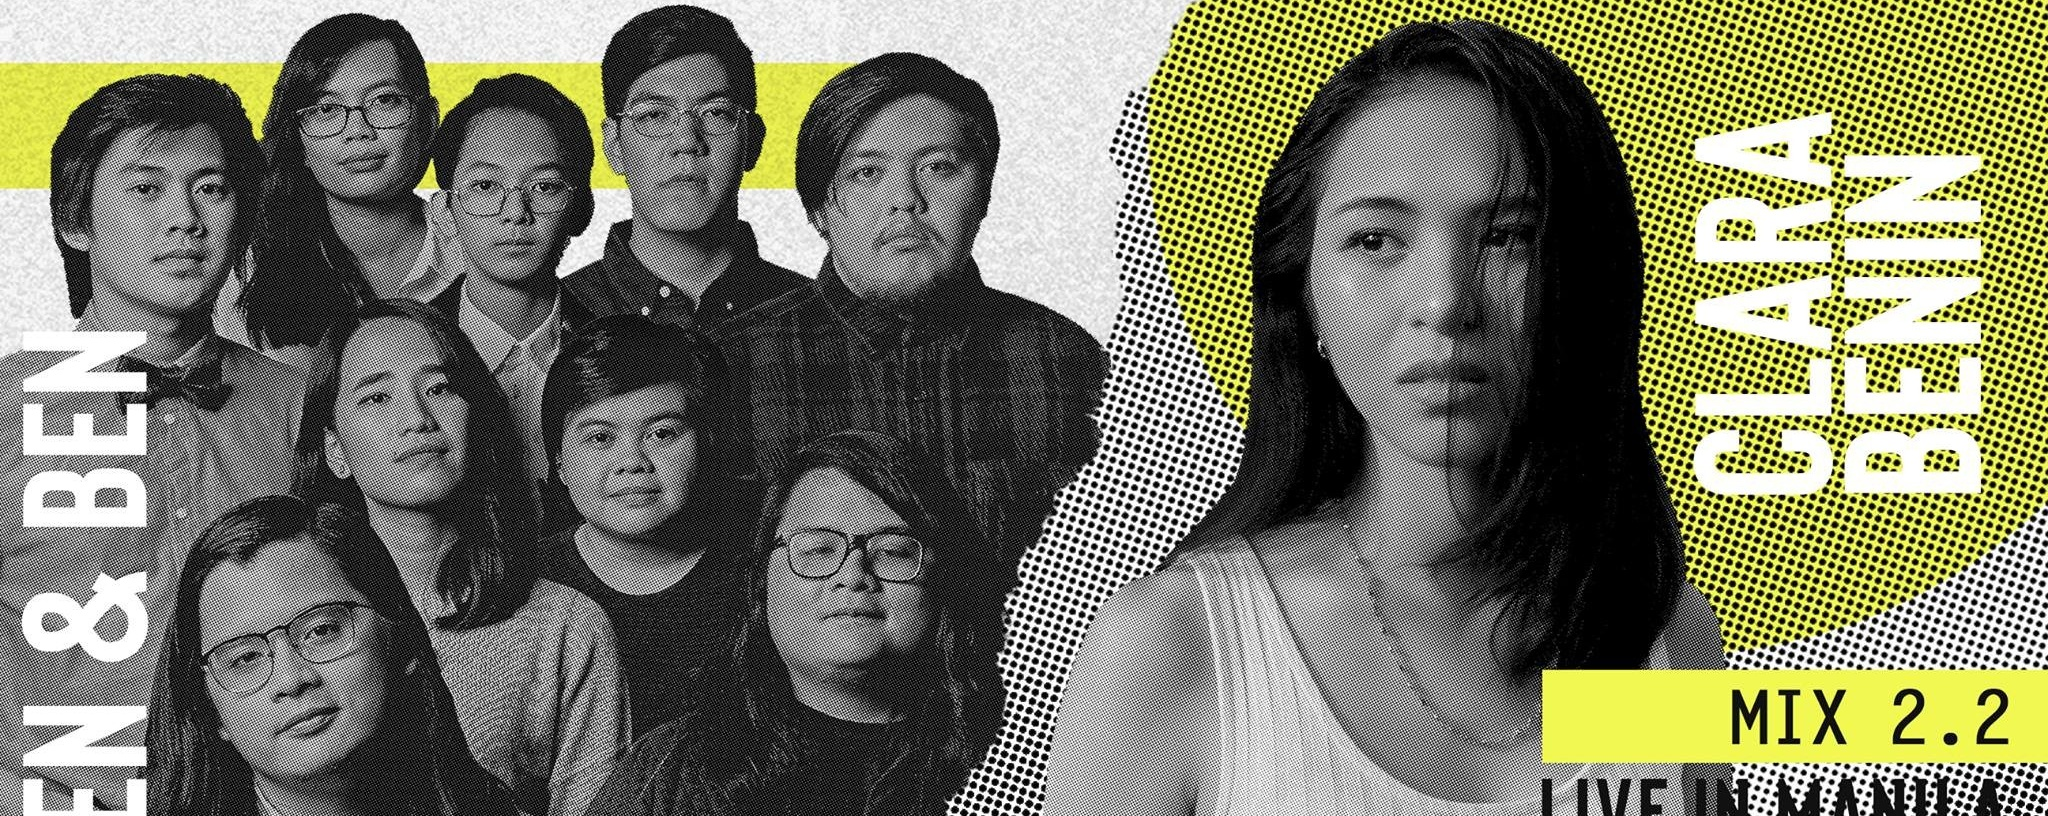 Karpos Live Mix 2.2 Ben&Ben and Clara Benin